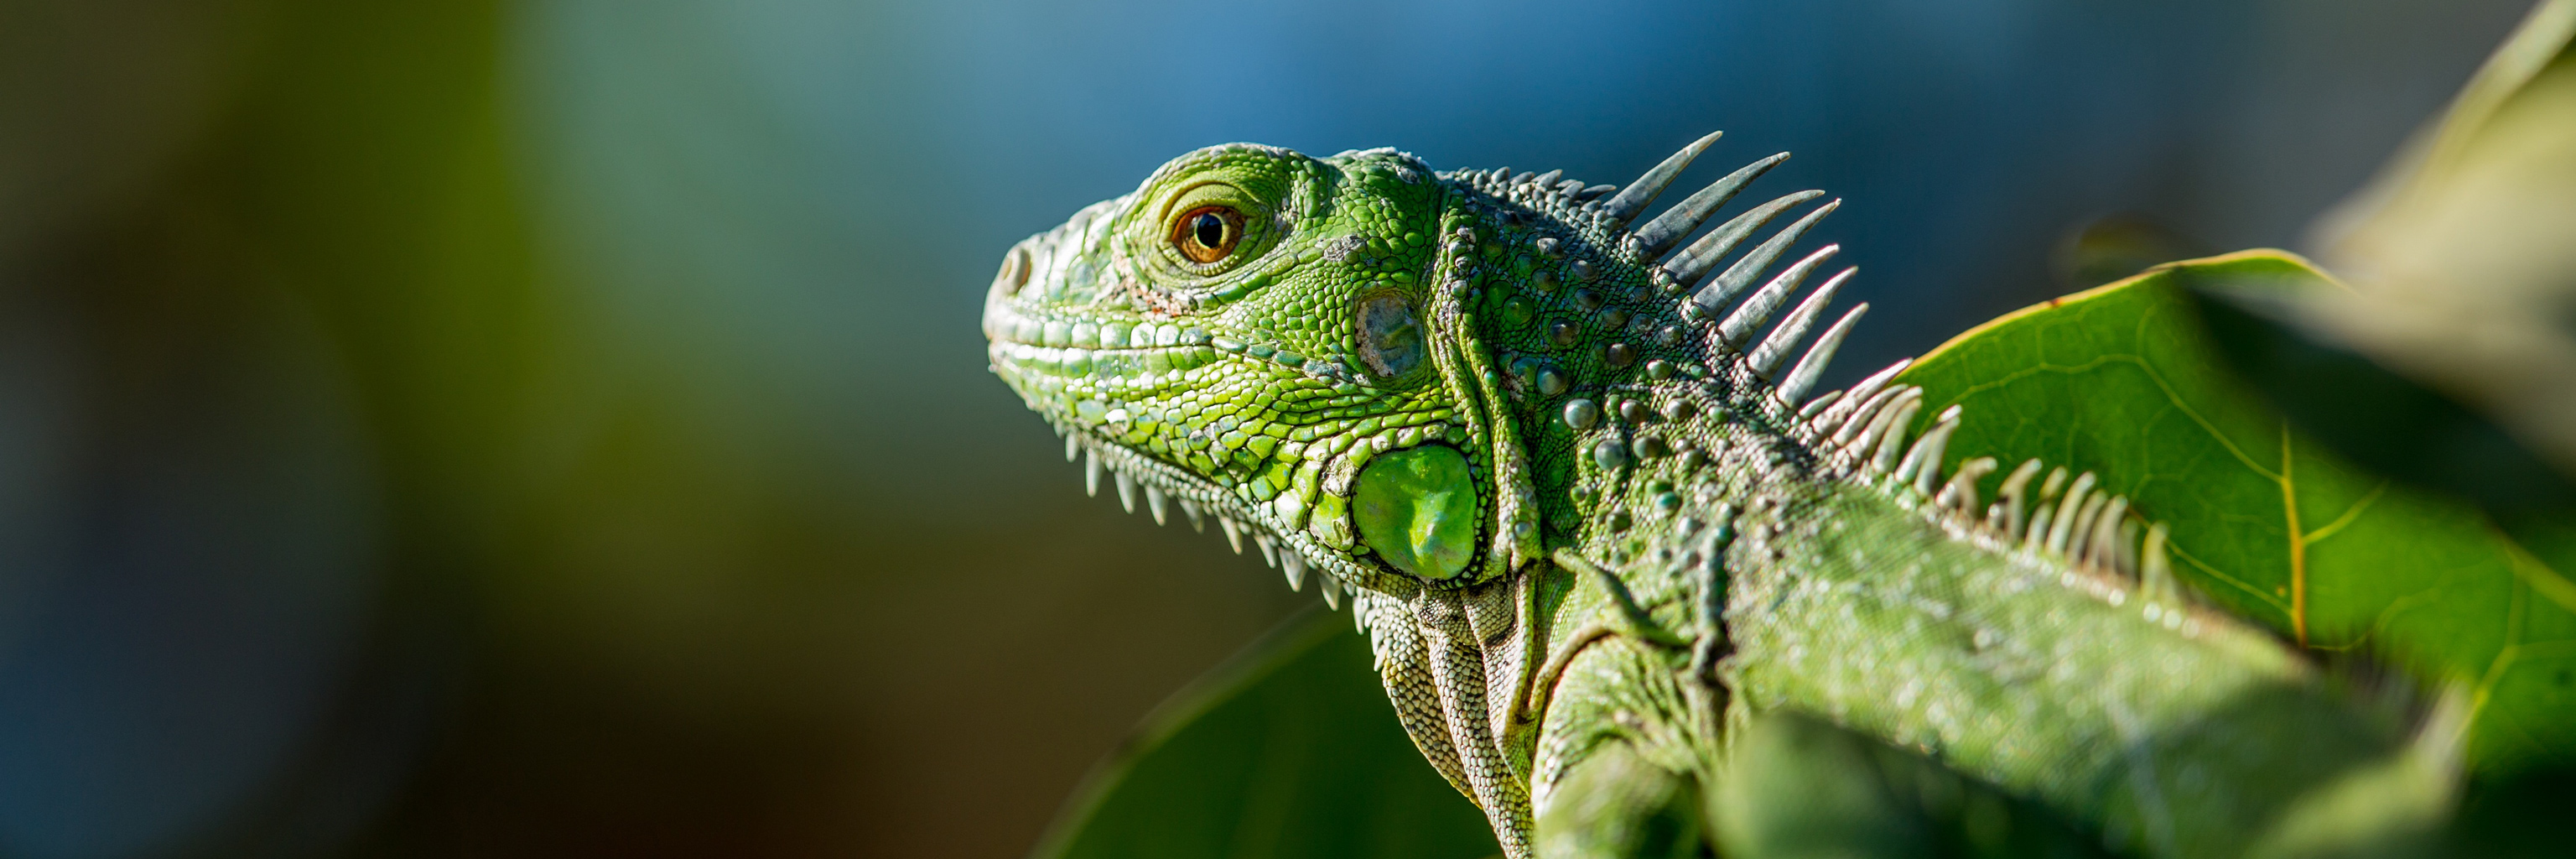 A green iguana looking to the left